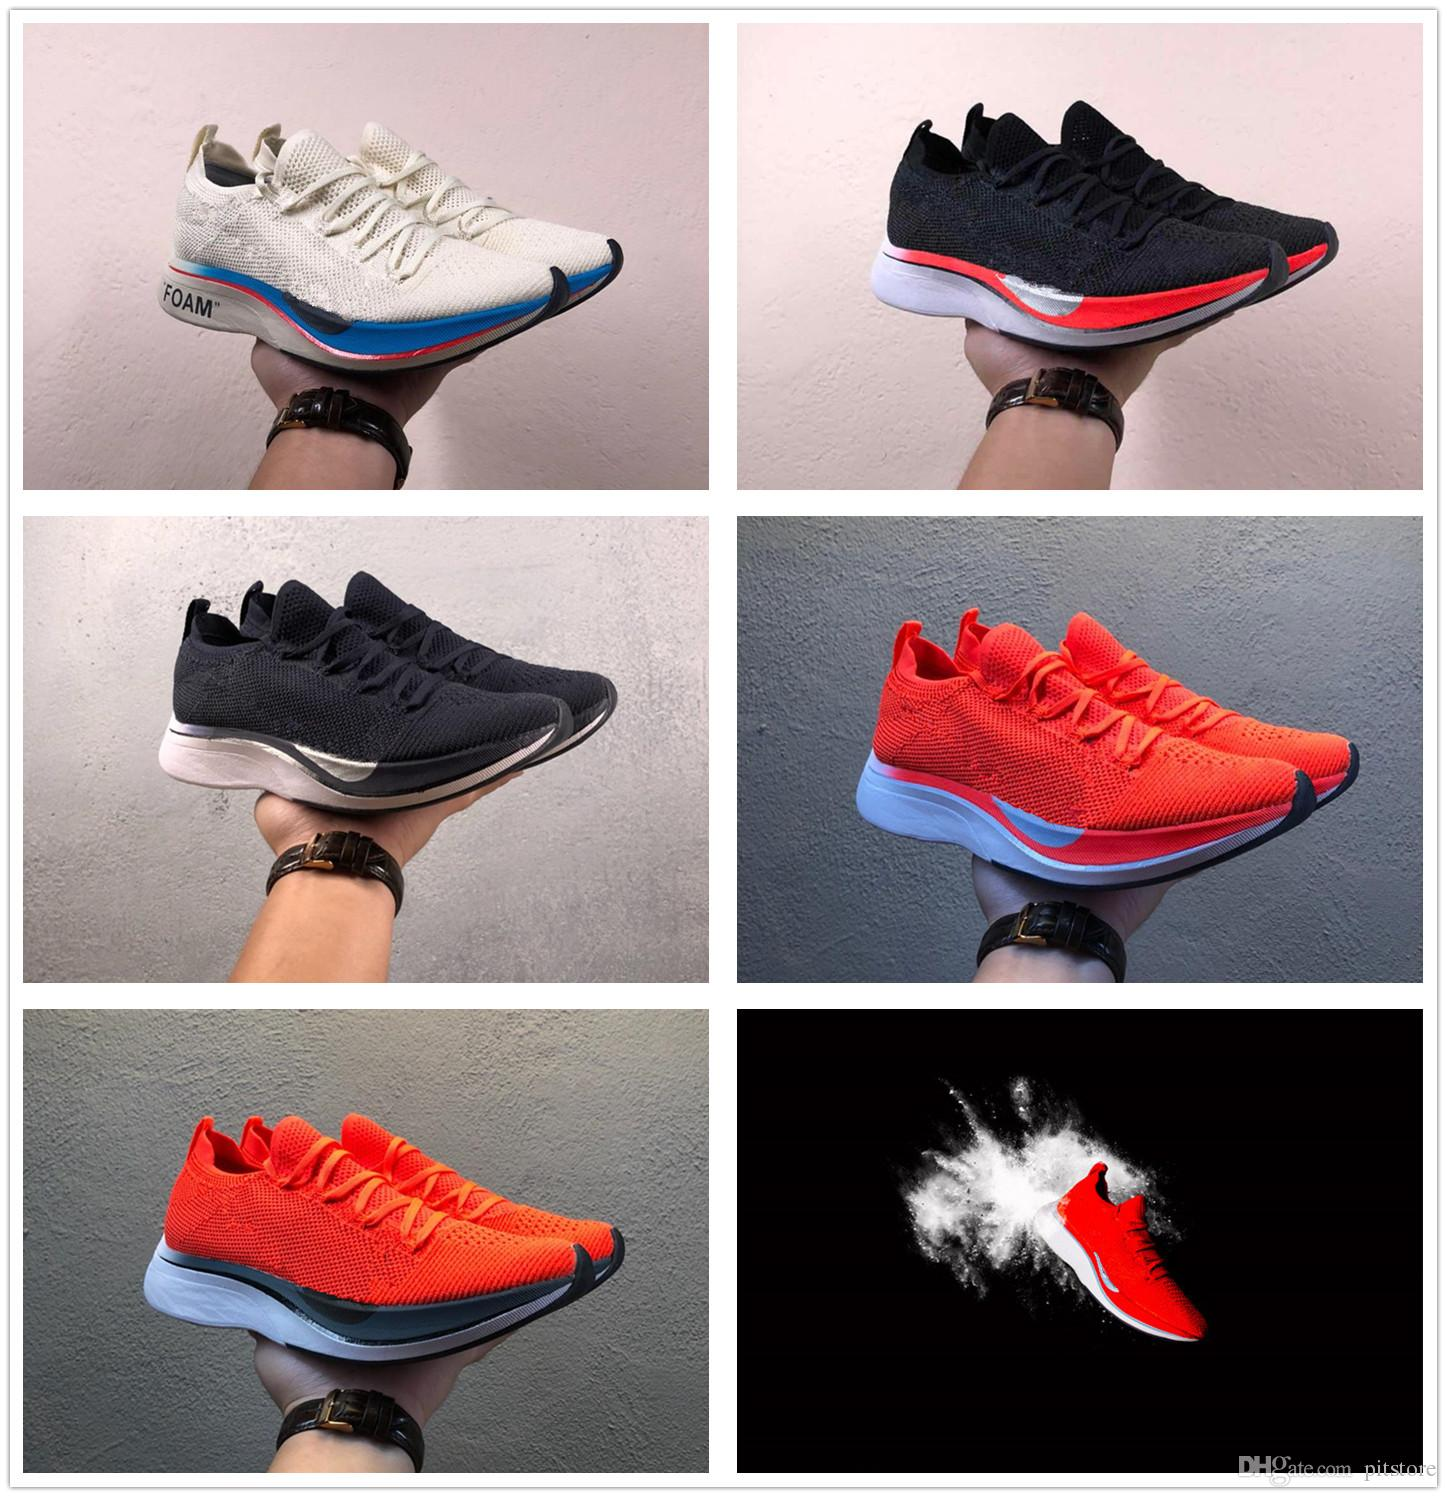 9789a86b7a0f8 2019 2019 New Top Zoom Shoe Vaporfly 4% Zoom Fly Zoom Pegasus Turbo ZoomX  AJ3857 600 Euro 36 45 With Box From Pitstore